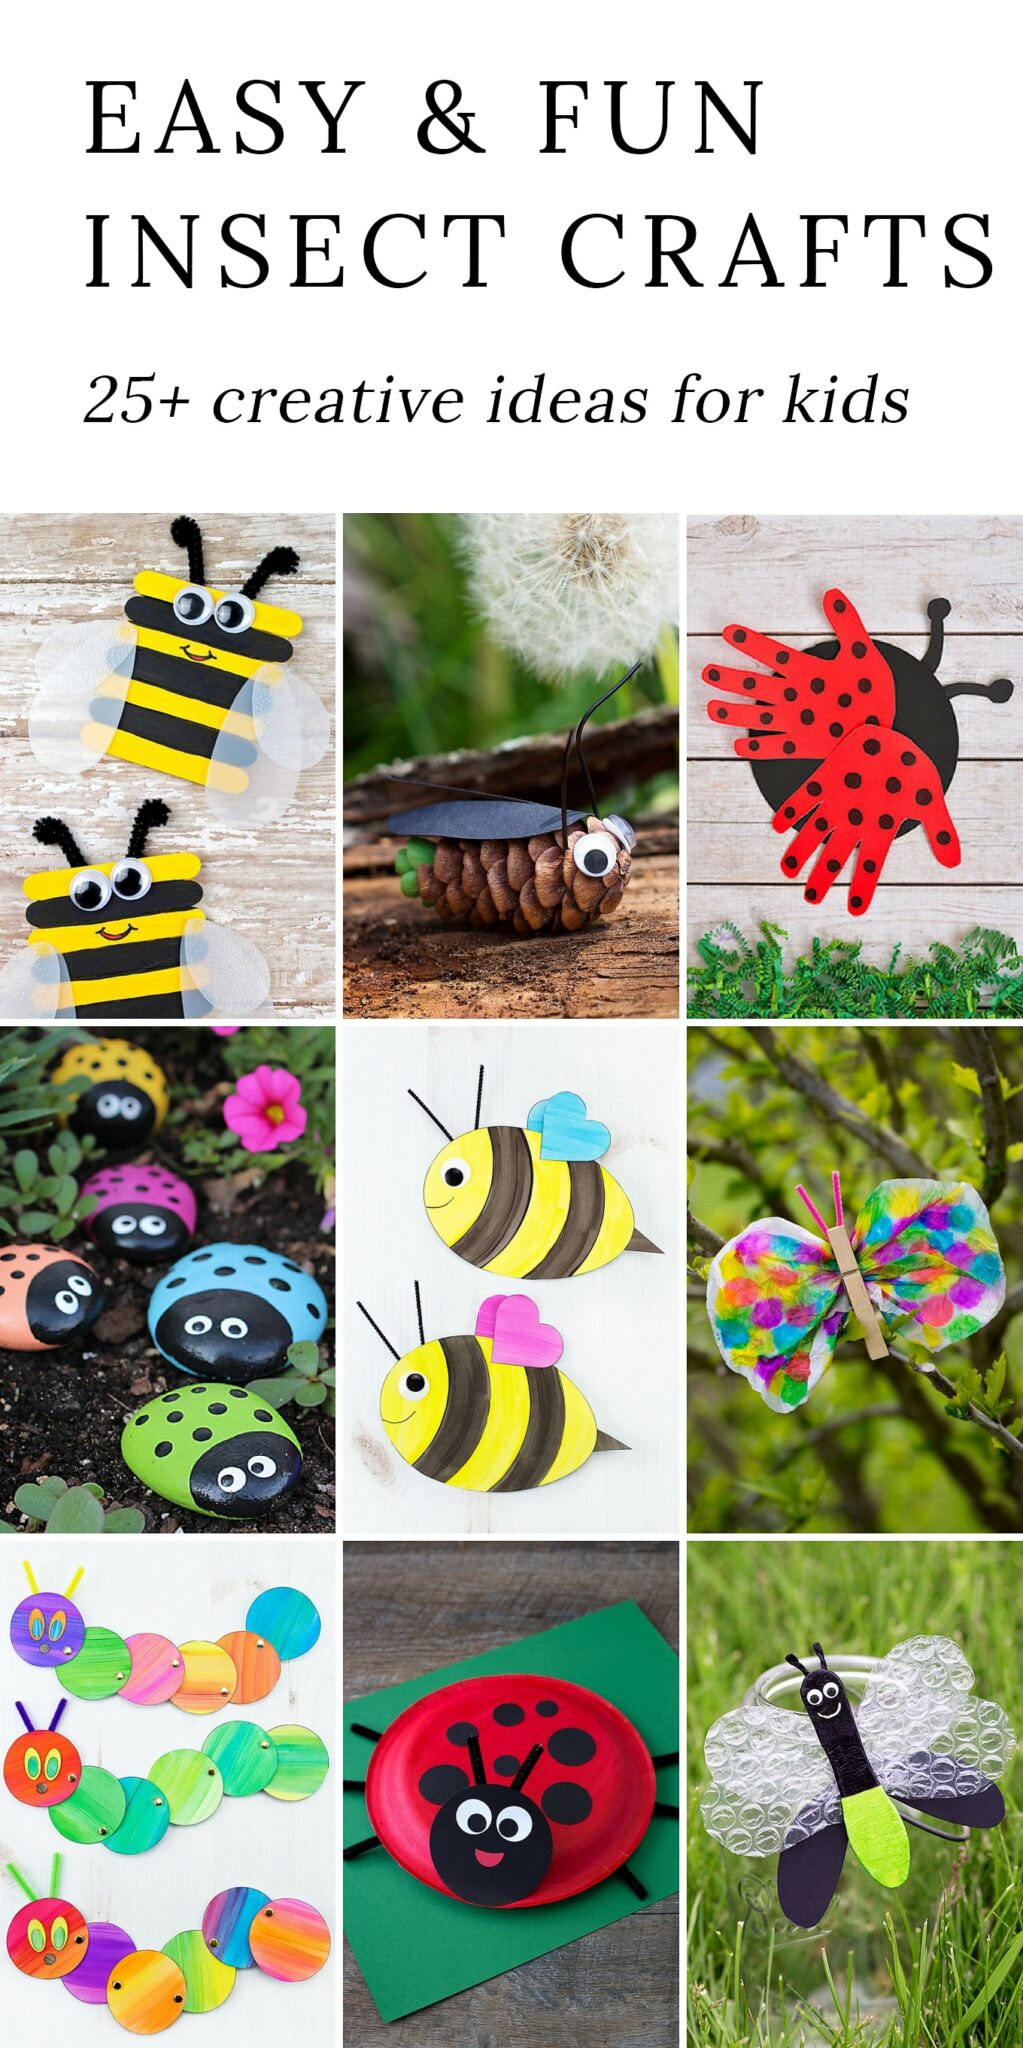 Discover 25+ easy and fun insect crafts that are perfect for summer camp, garden or insect-themed birthday parties, or just as a relaxing, crafty way to bond with your child at home. #insectcrafts #bugcrafts #summercrafts via @firefliesandmudpies